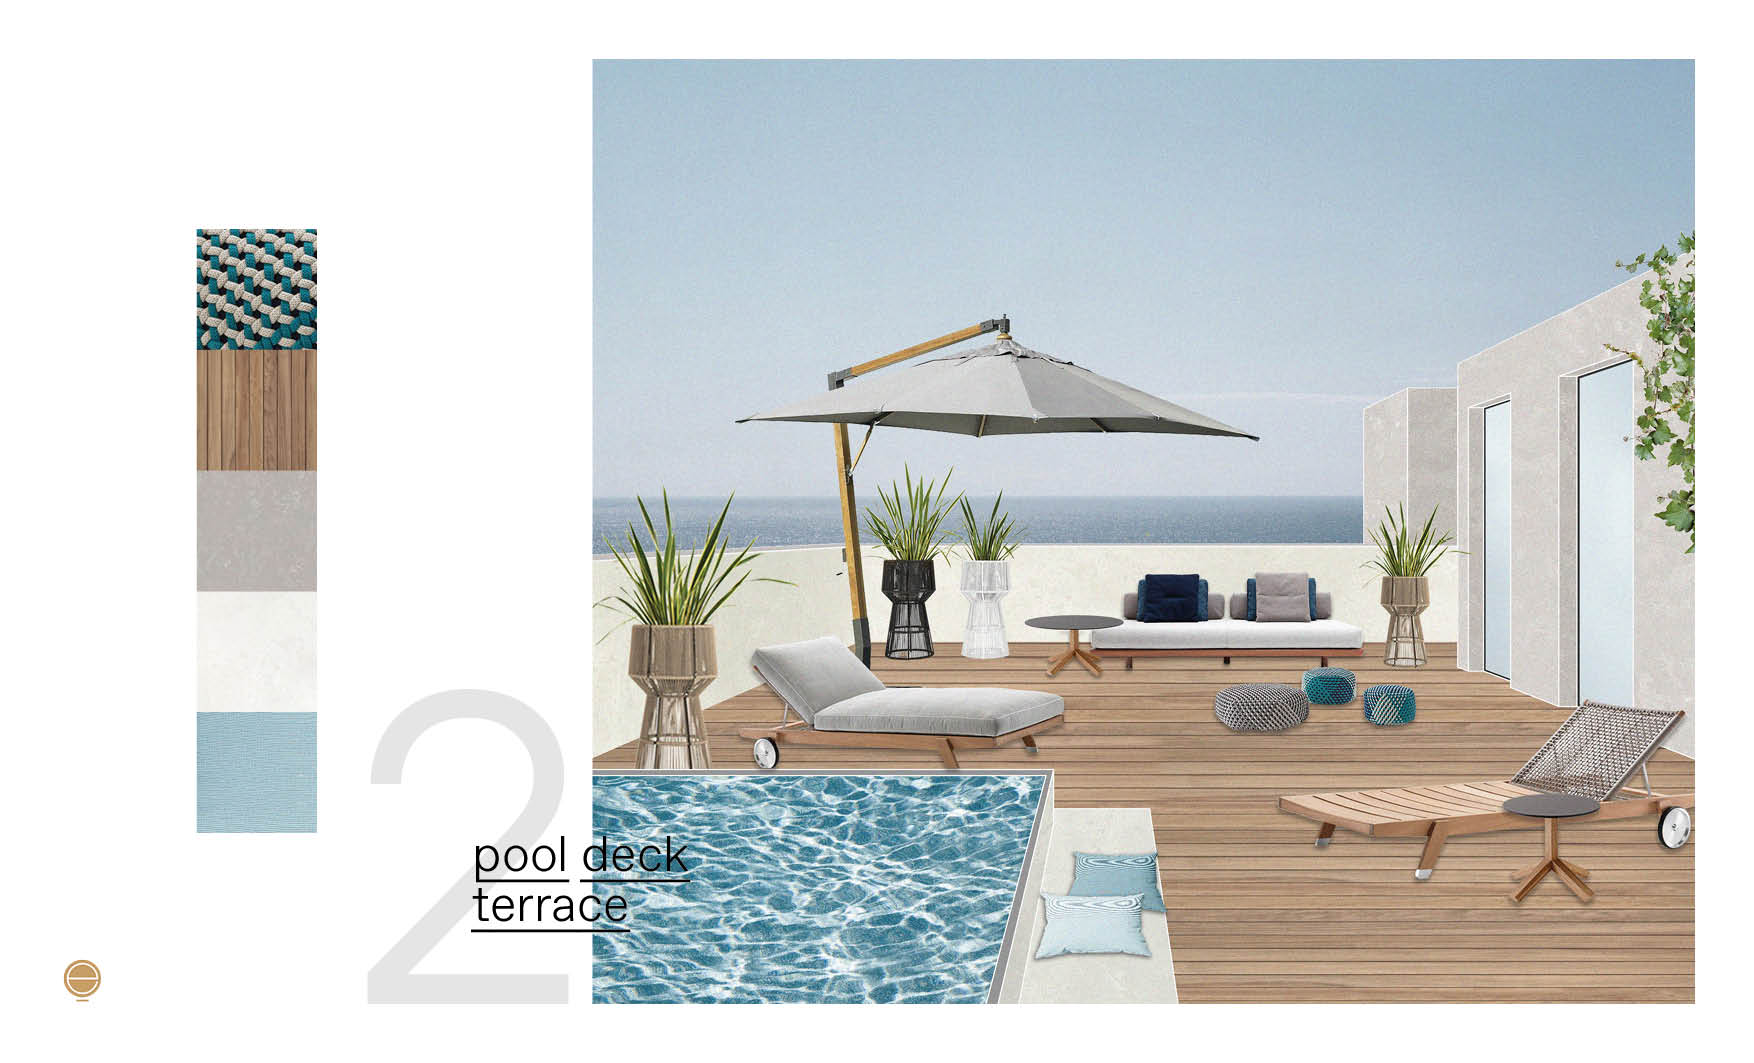 pool-deck Italian patio design project made by esperiri team